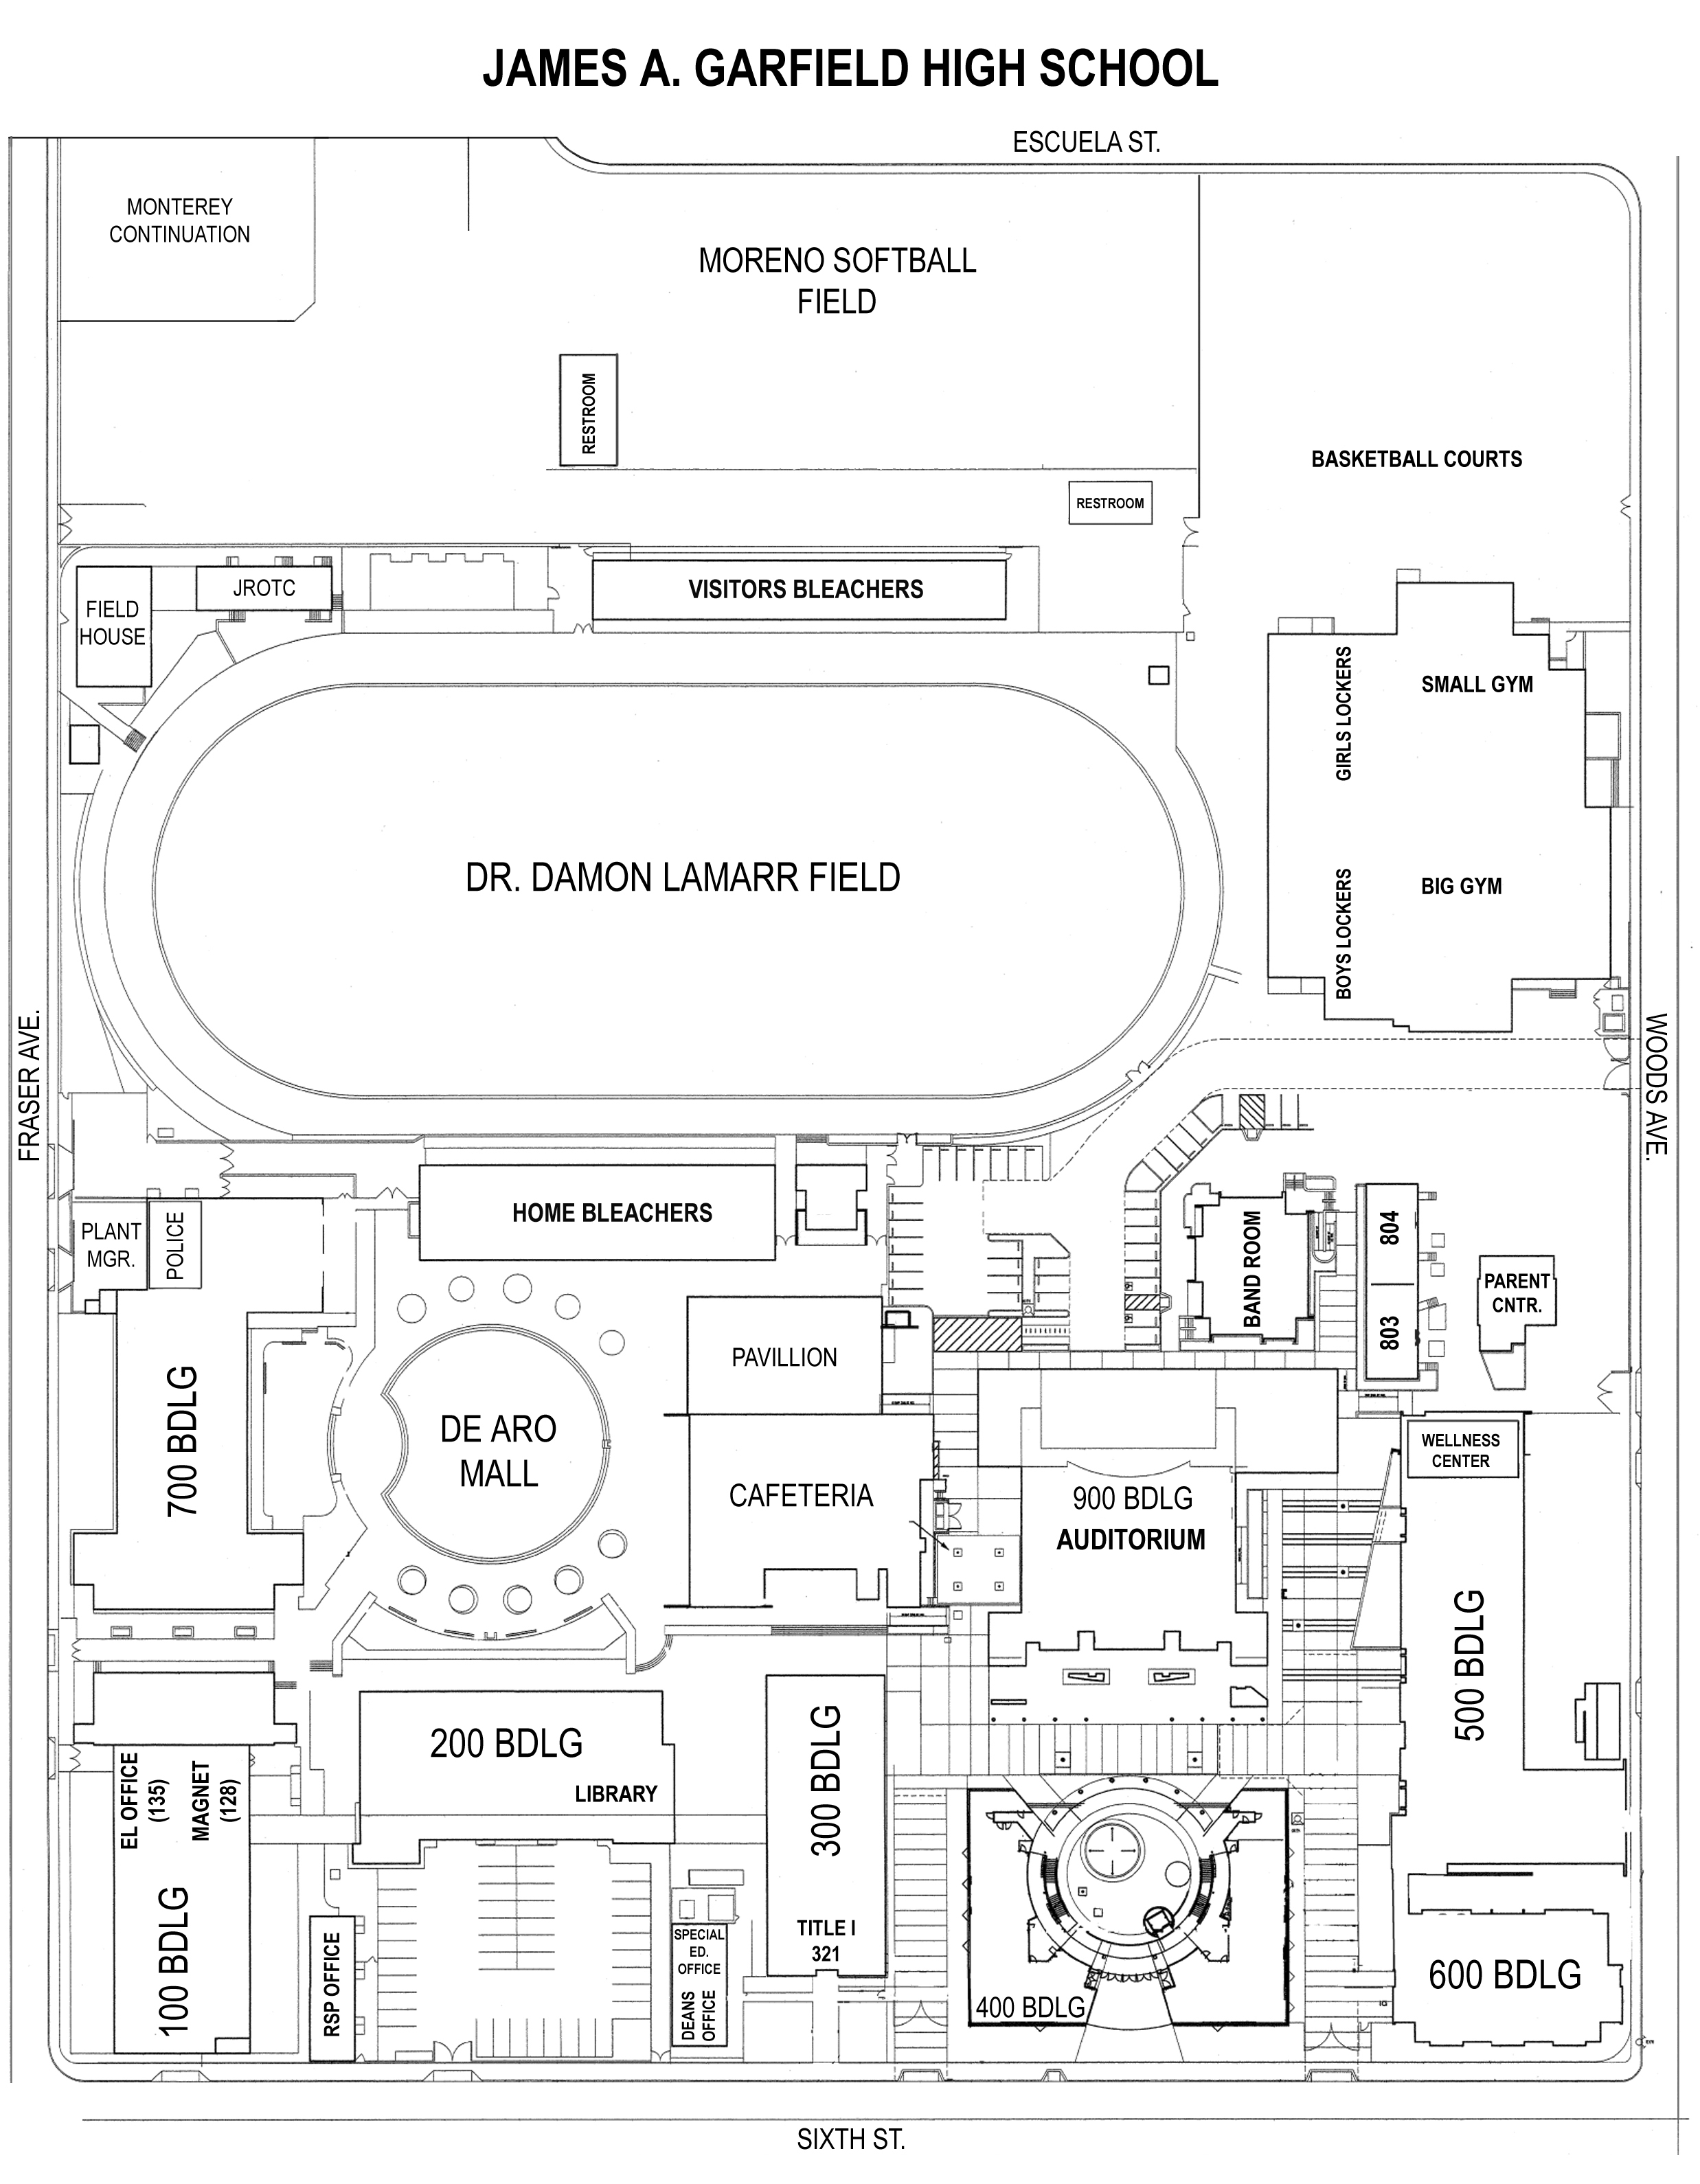 Public School Building Line Plan